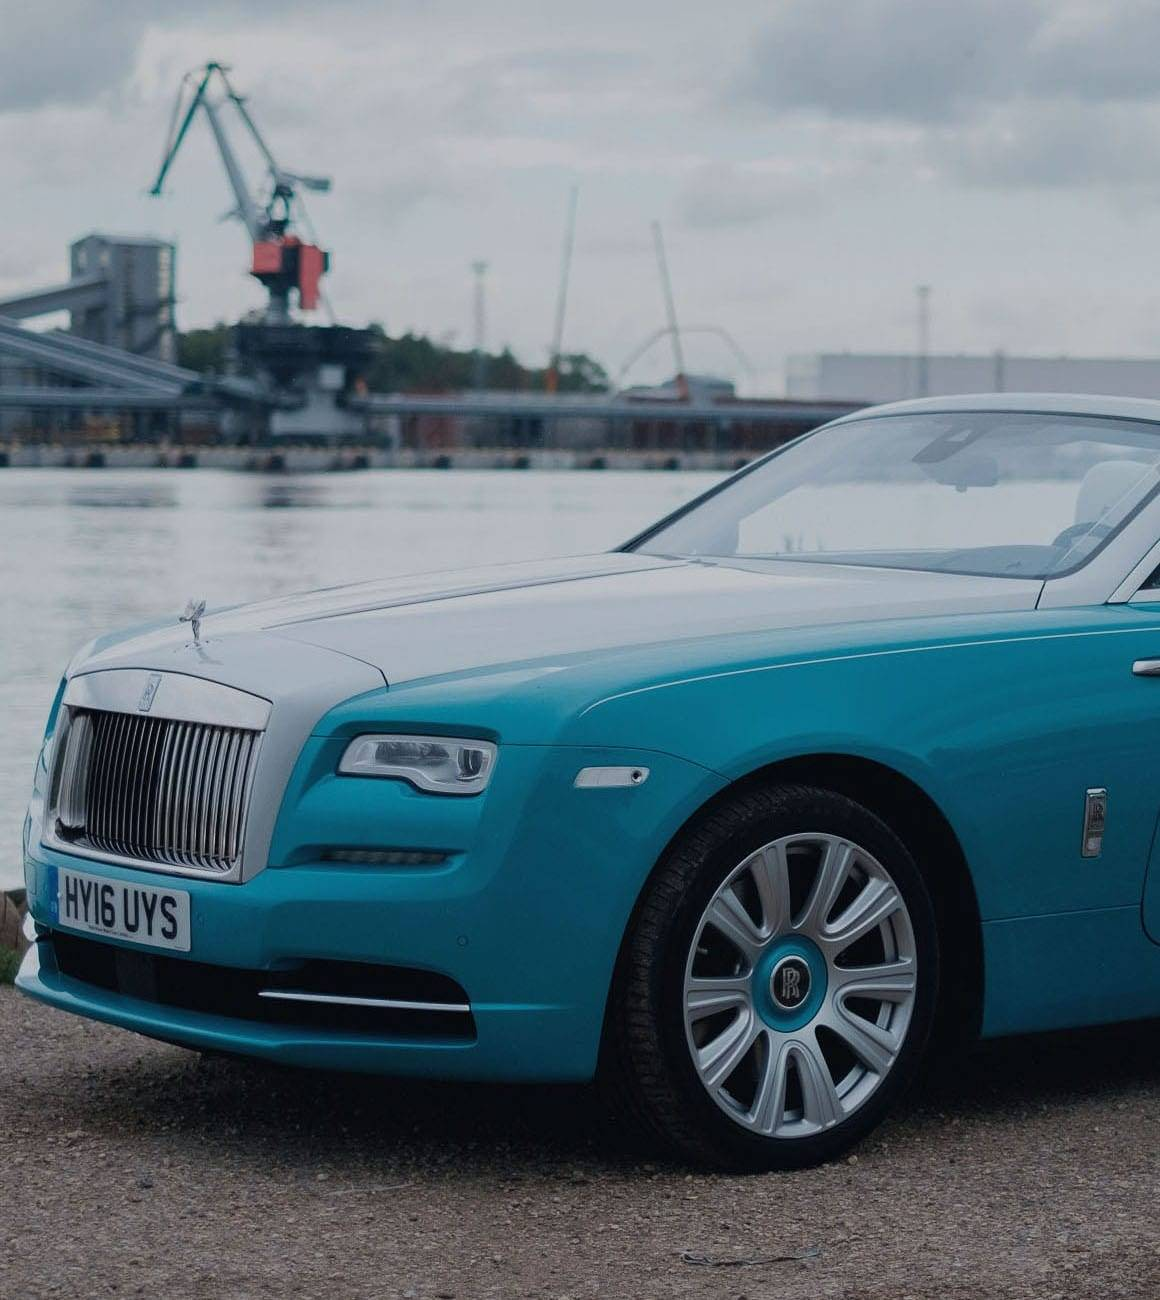 Compare Rolls Royce insurance costs for all models